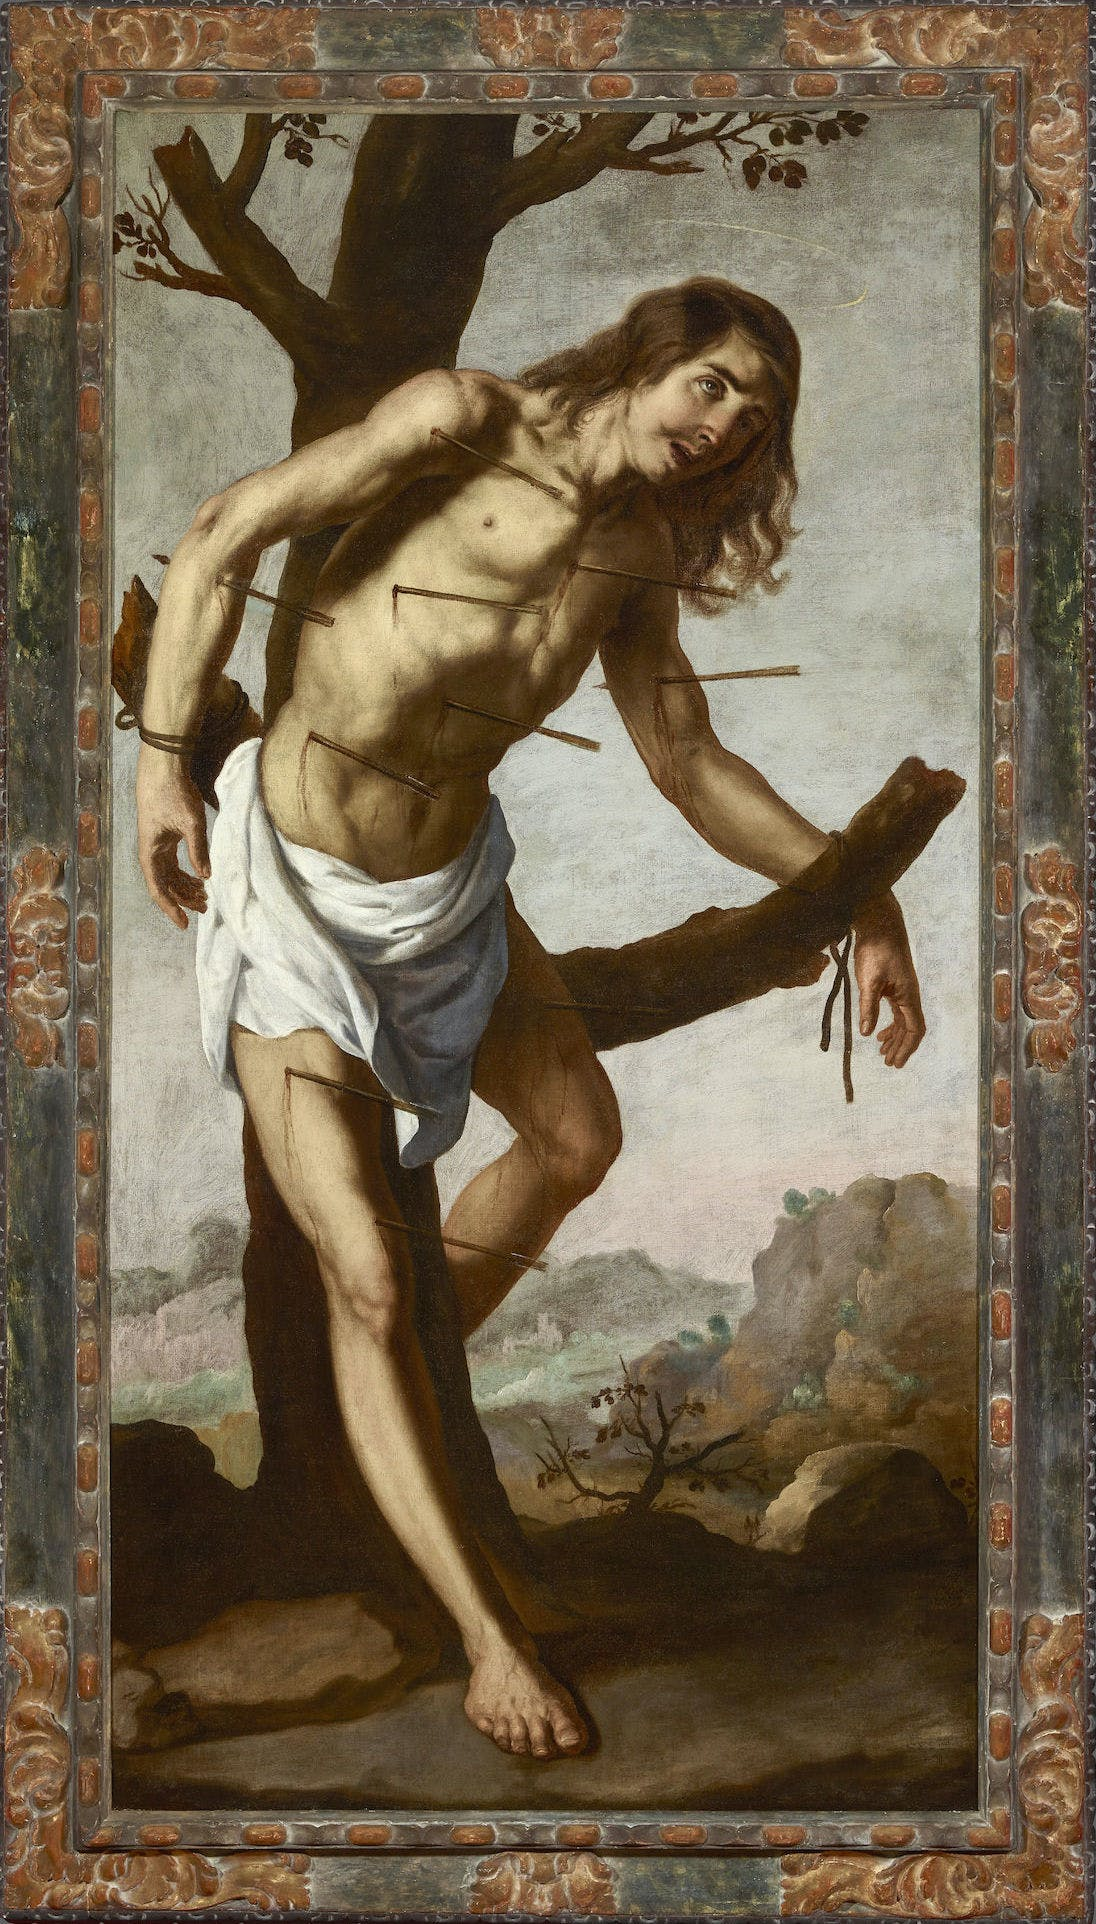 The Martyrdom of Saint Sebastian, Zurbarán